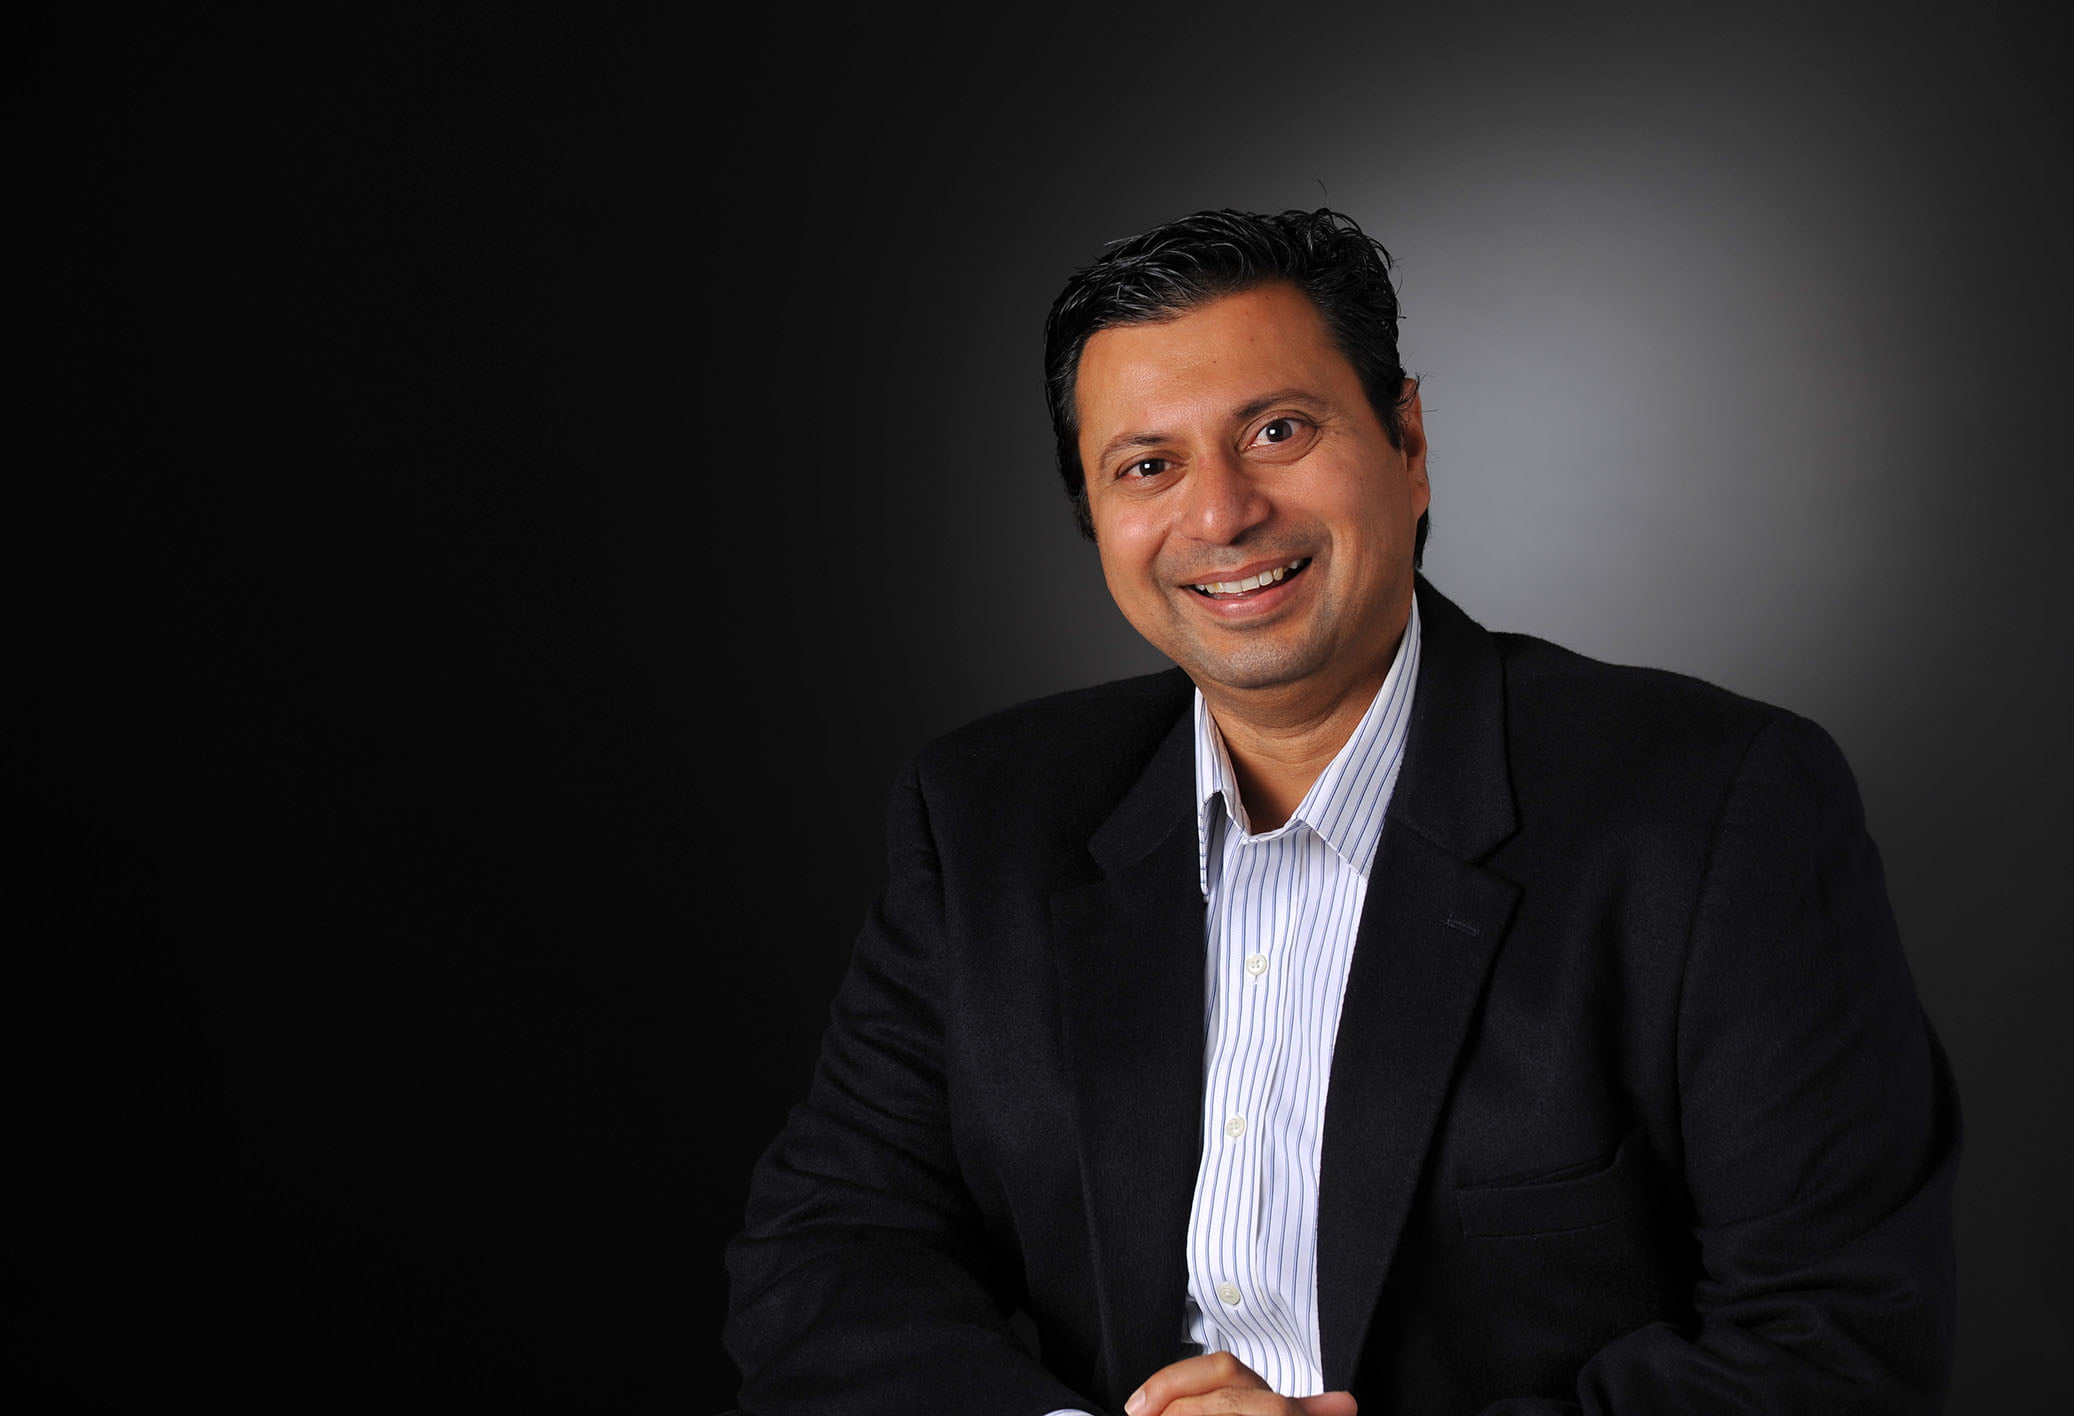 Sudhir Verma Joins Applied Insight to Lead Sales of Award-Winning Cloud Products Altitude and SHIFT